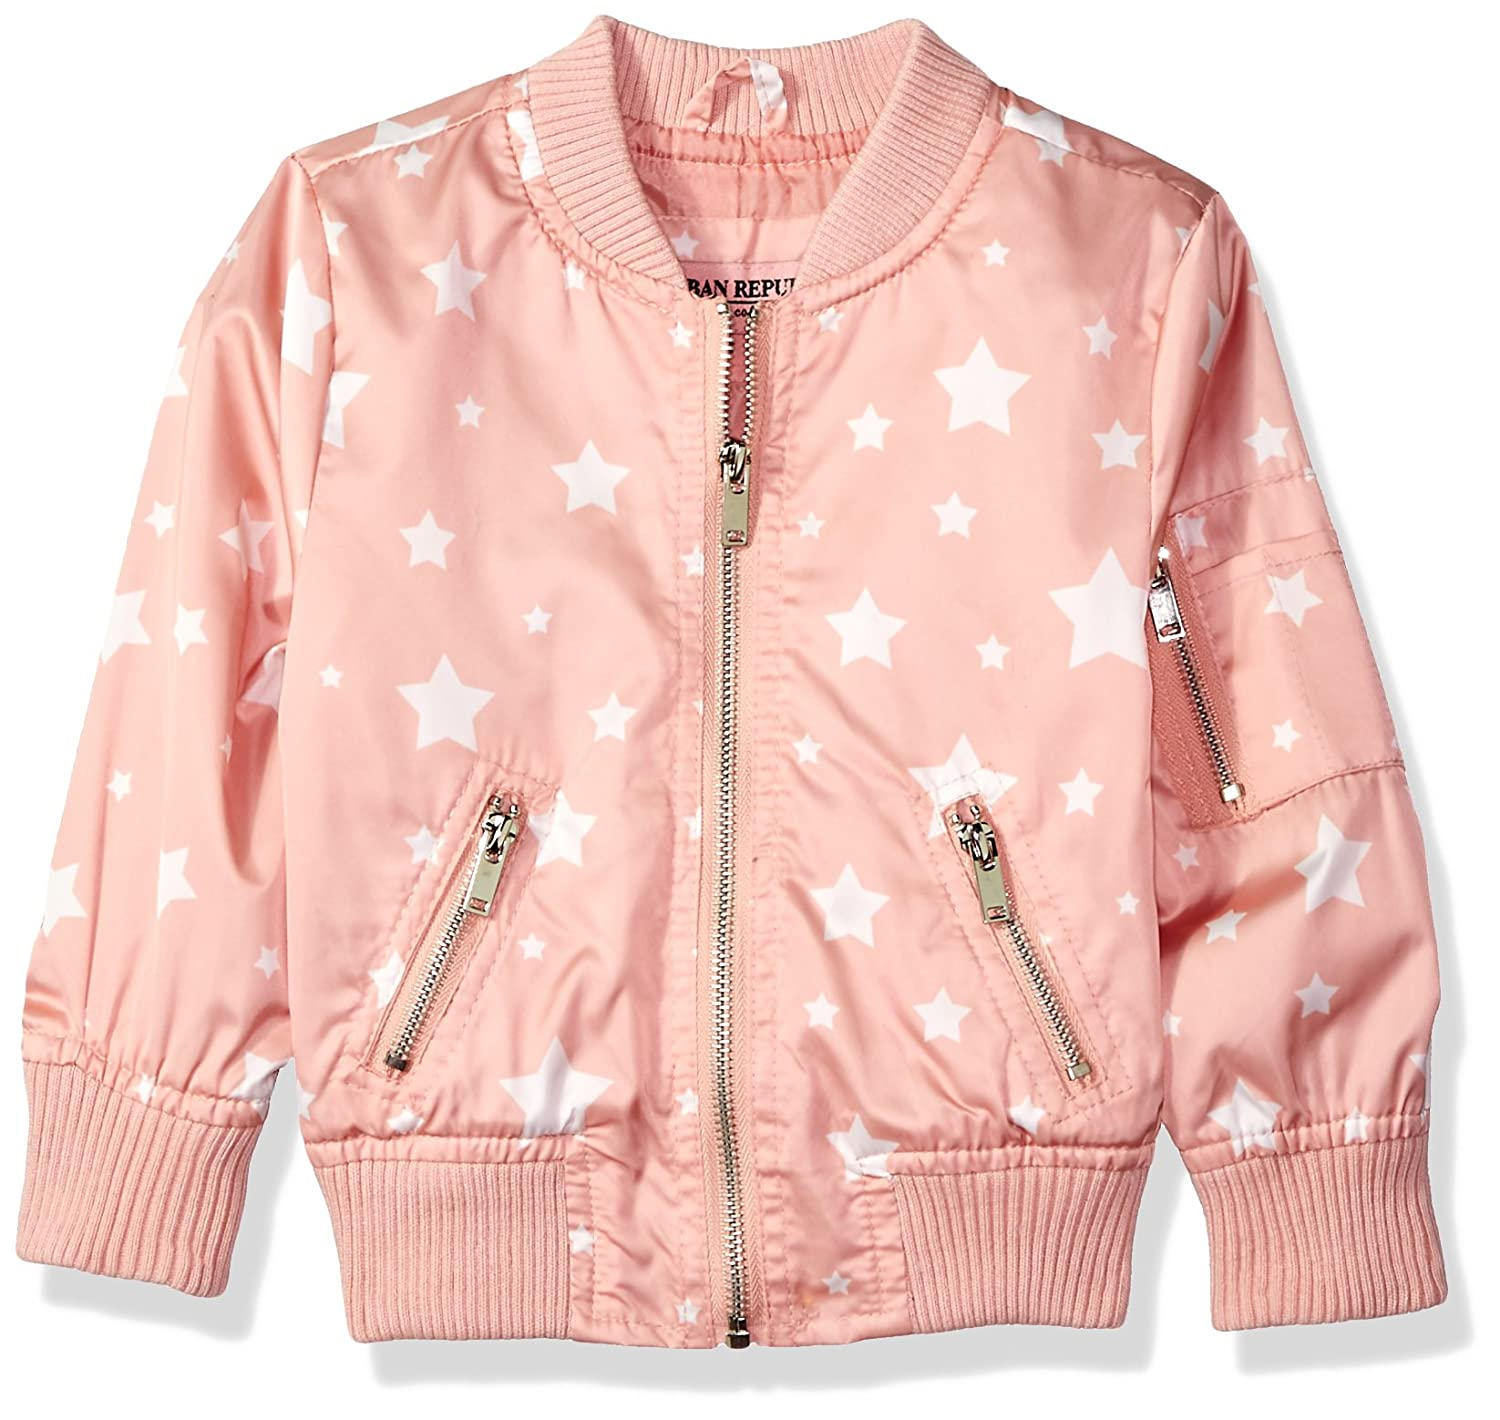 Urban Republic Big Girls Bomber Jacket Olive 10-12